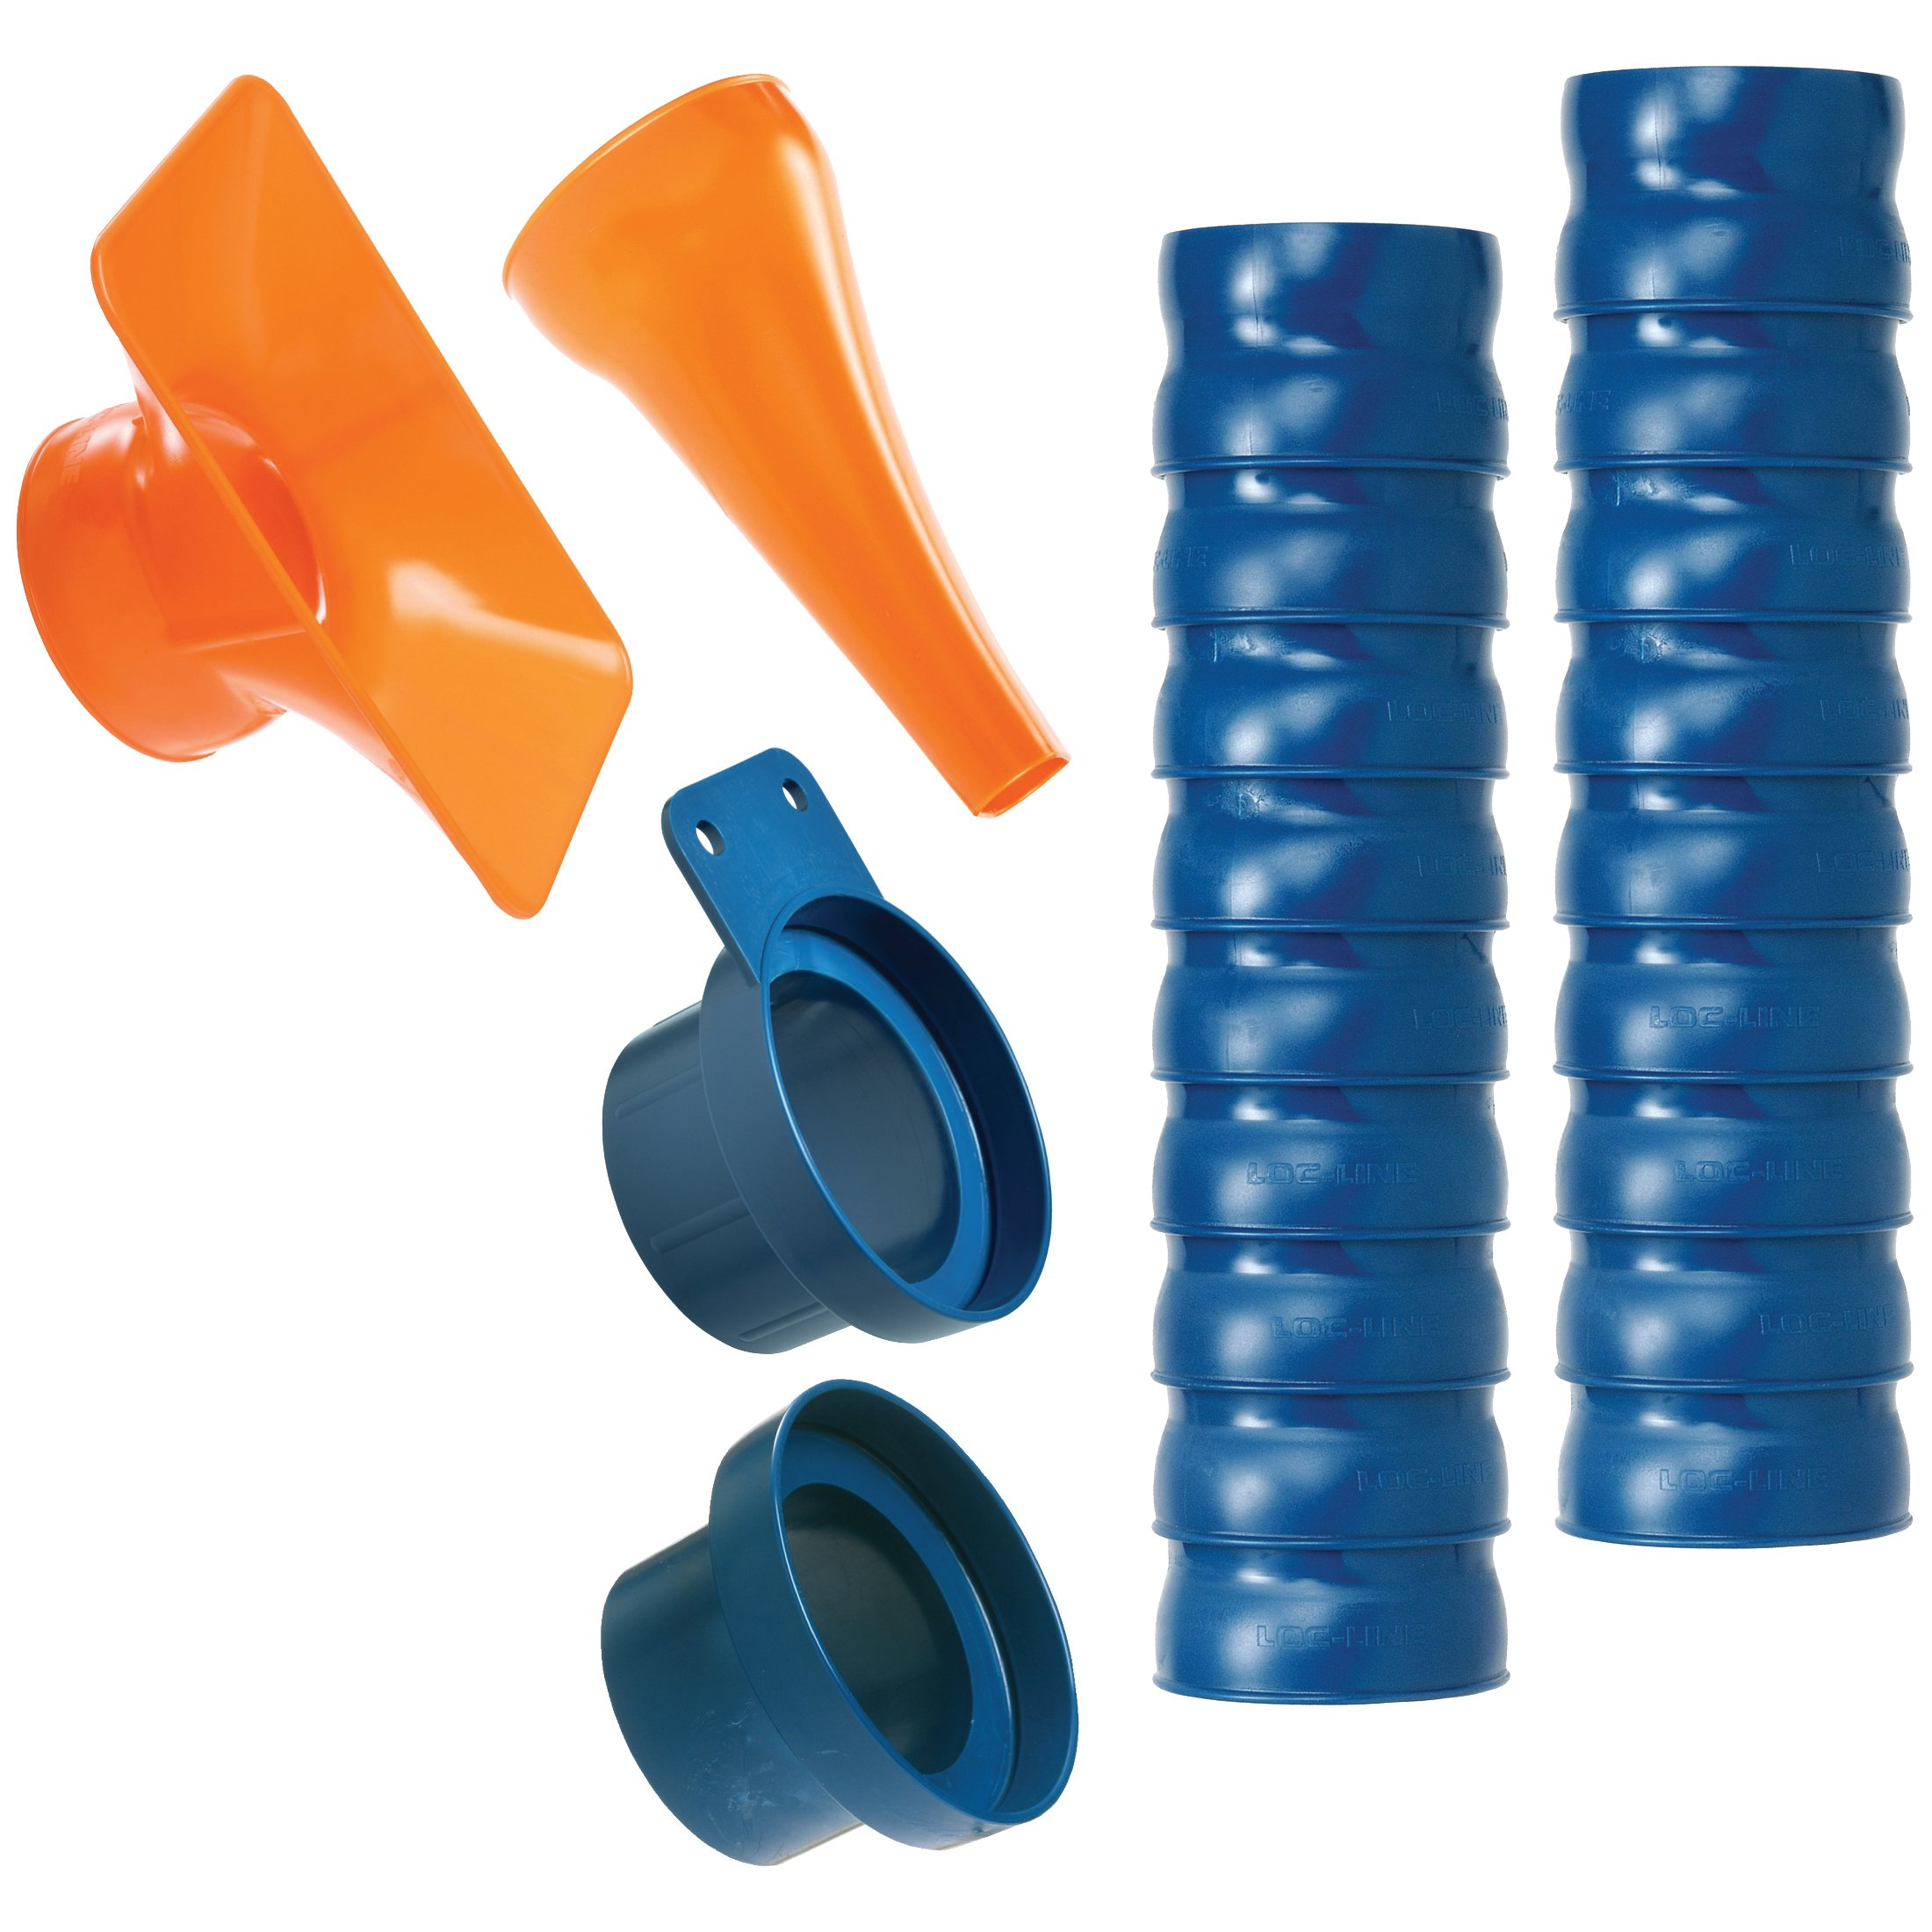 Loc-Line 80813 Shop Vacuum Kit, 2.5'', Blue/Orange by Loc-Line